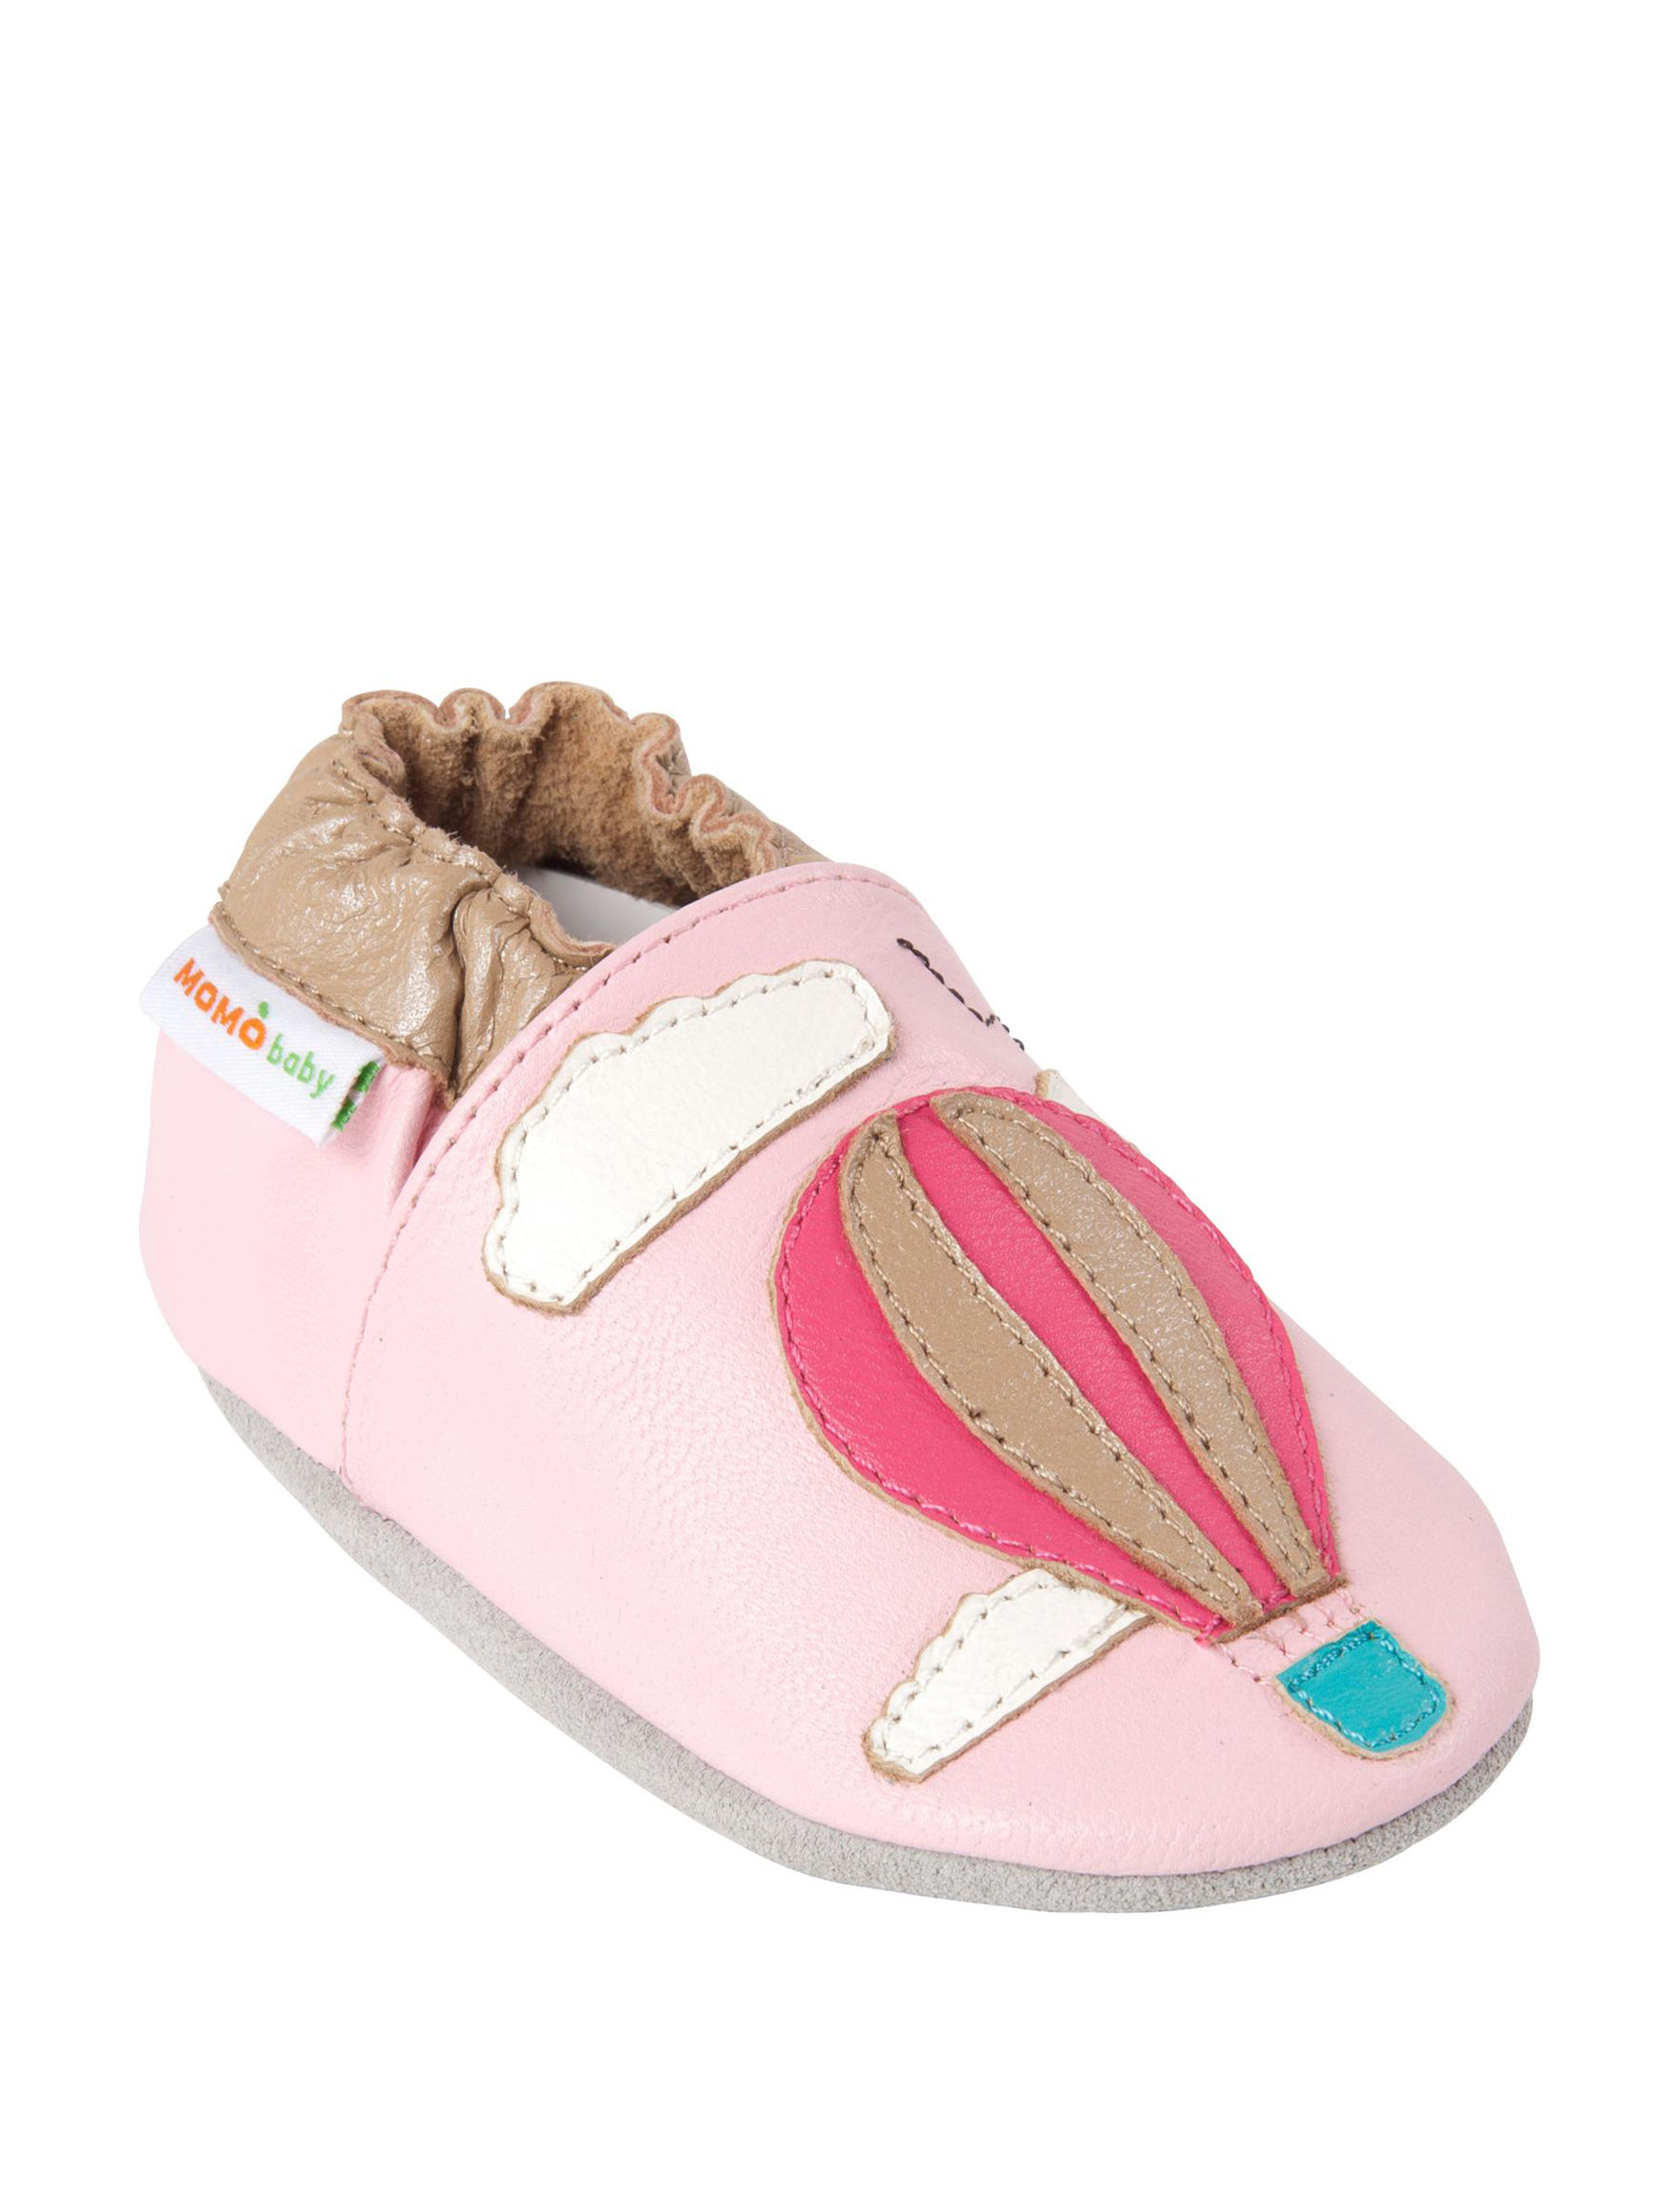 Momo Baby Away We Go Crib Shoes Baby 6 24 Mos